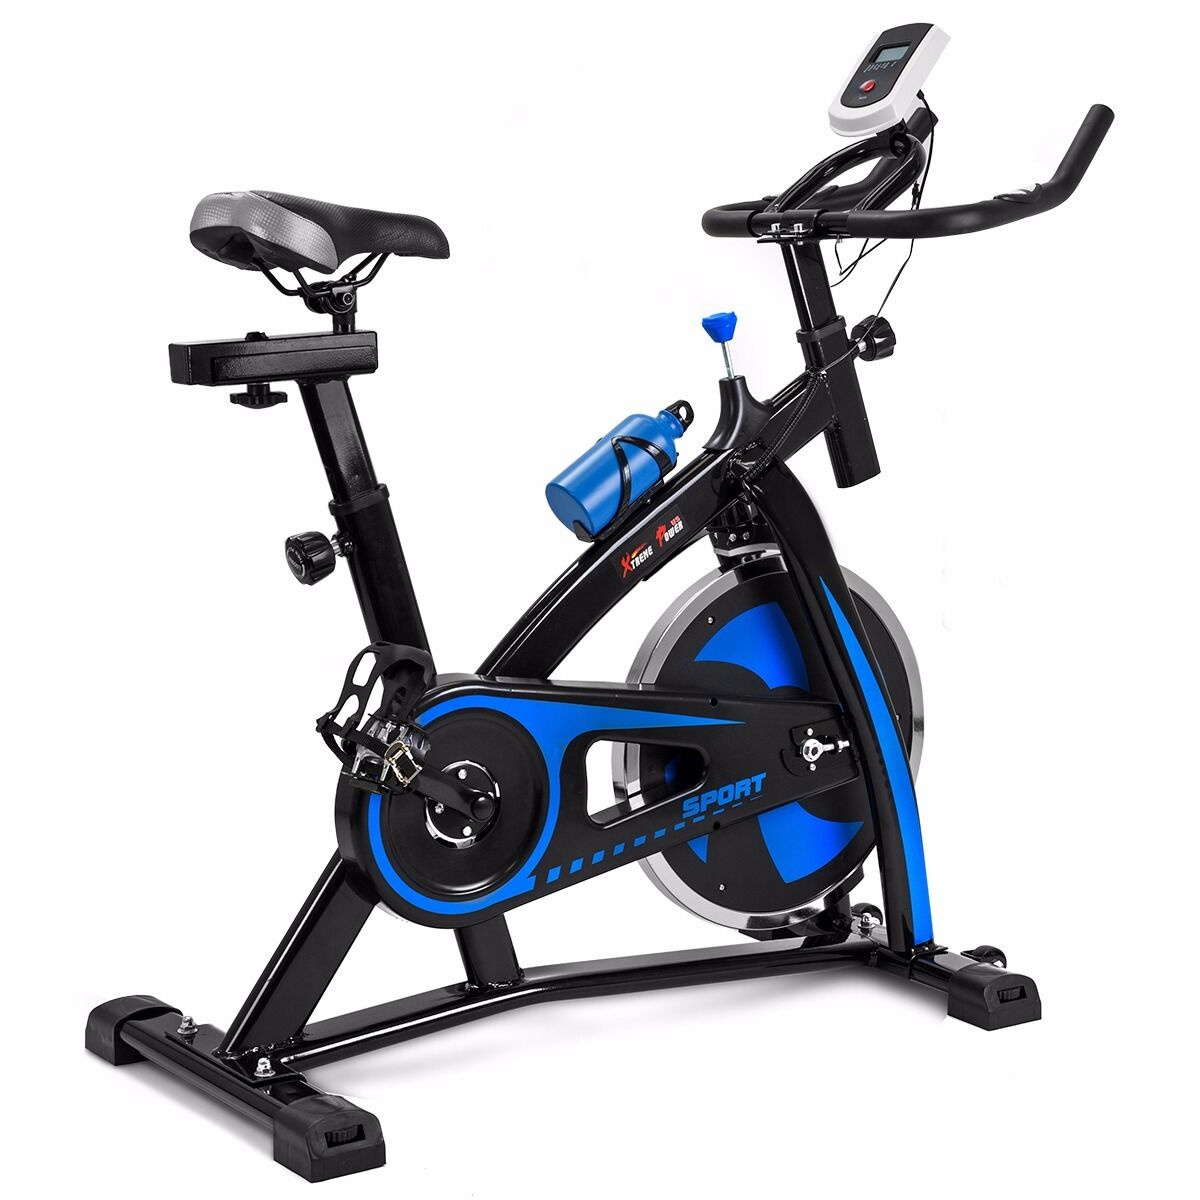 Bicycle Cycling Fitness Gym Exercise Stationary bike ...